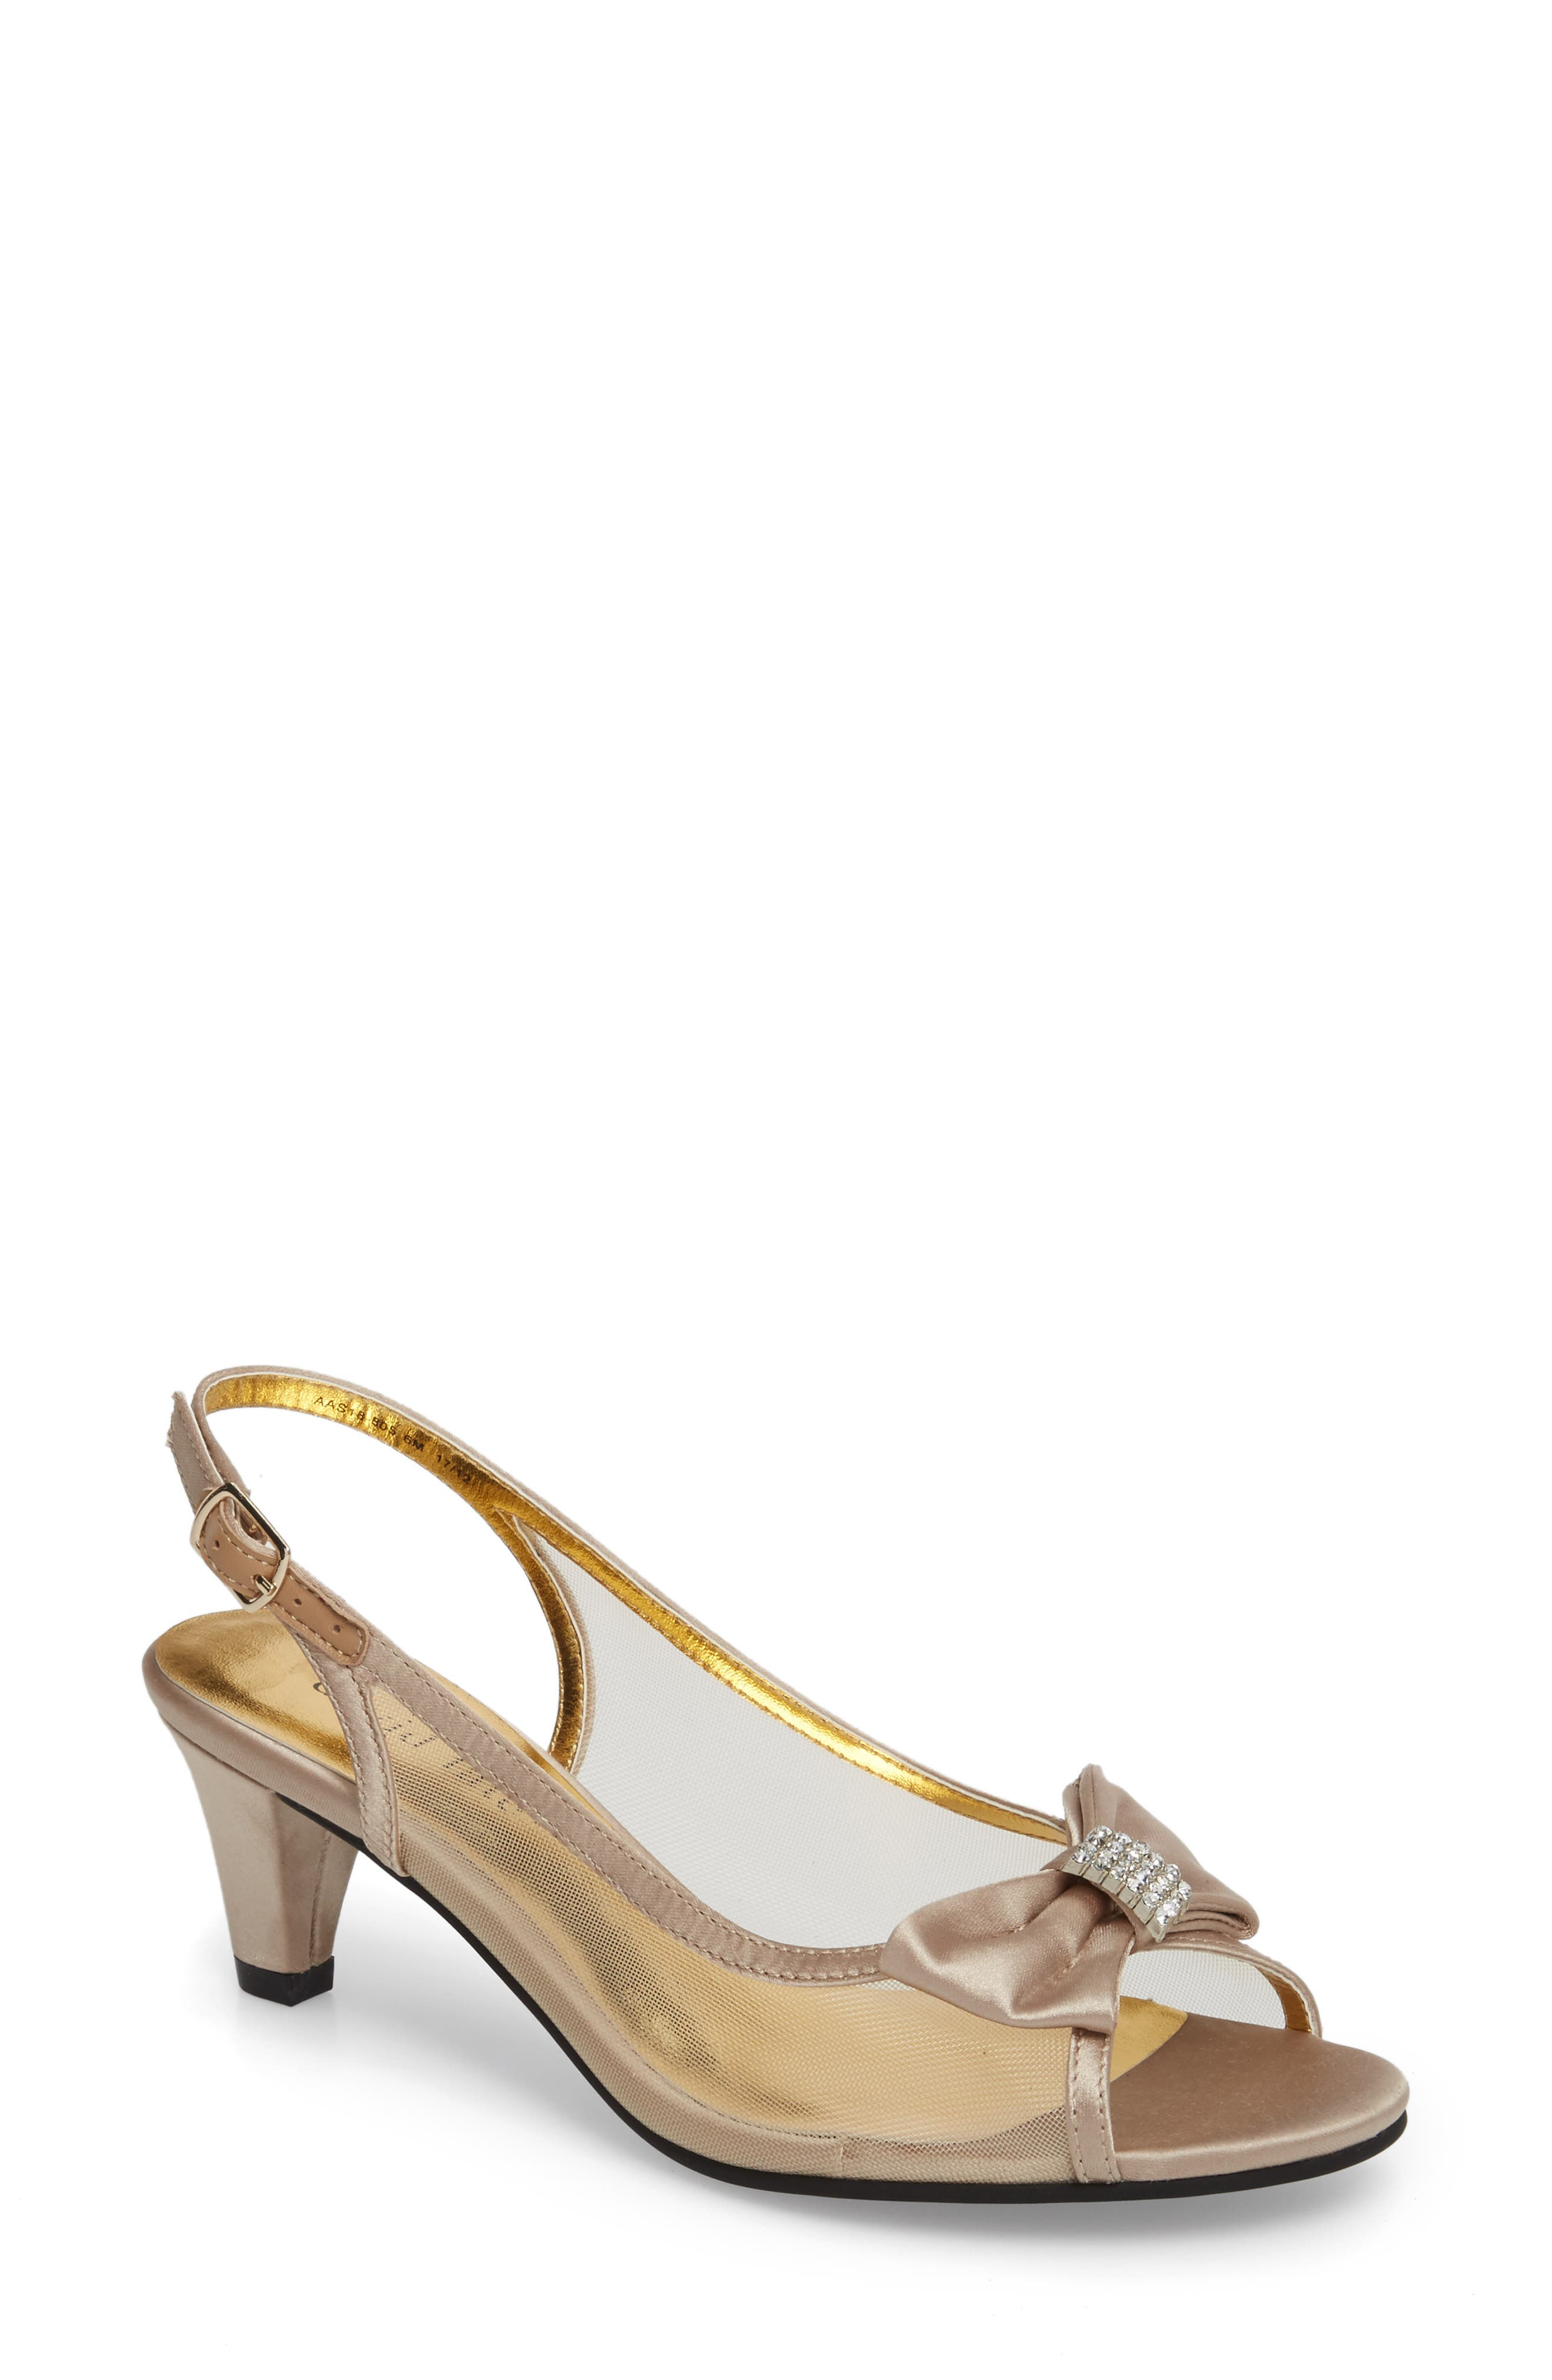 Foxy Slingback Sandal,                         Main,                         color, Champagne Satin